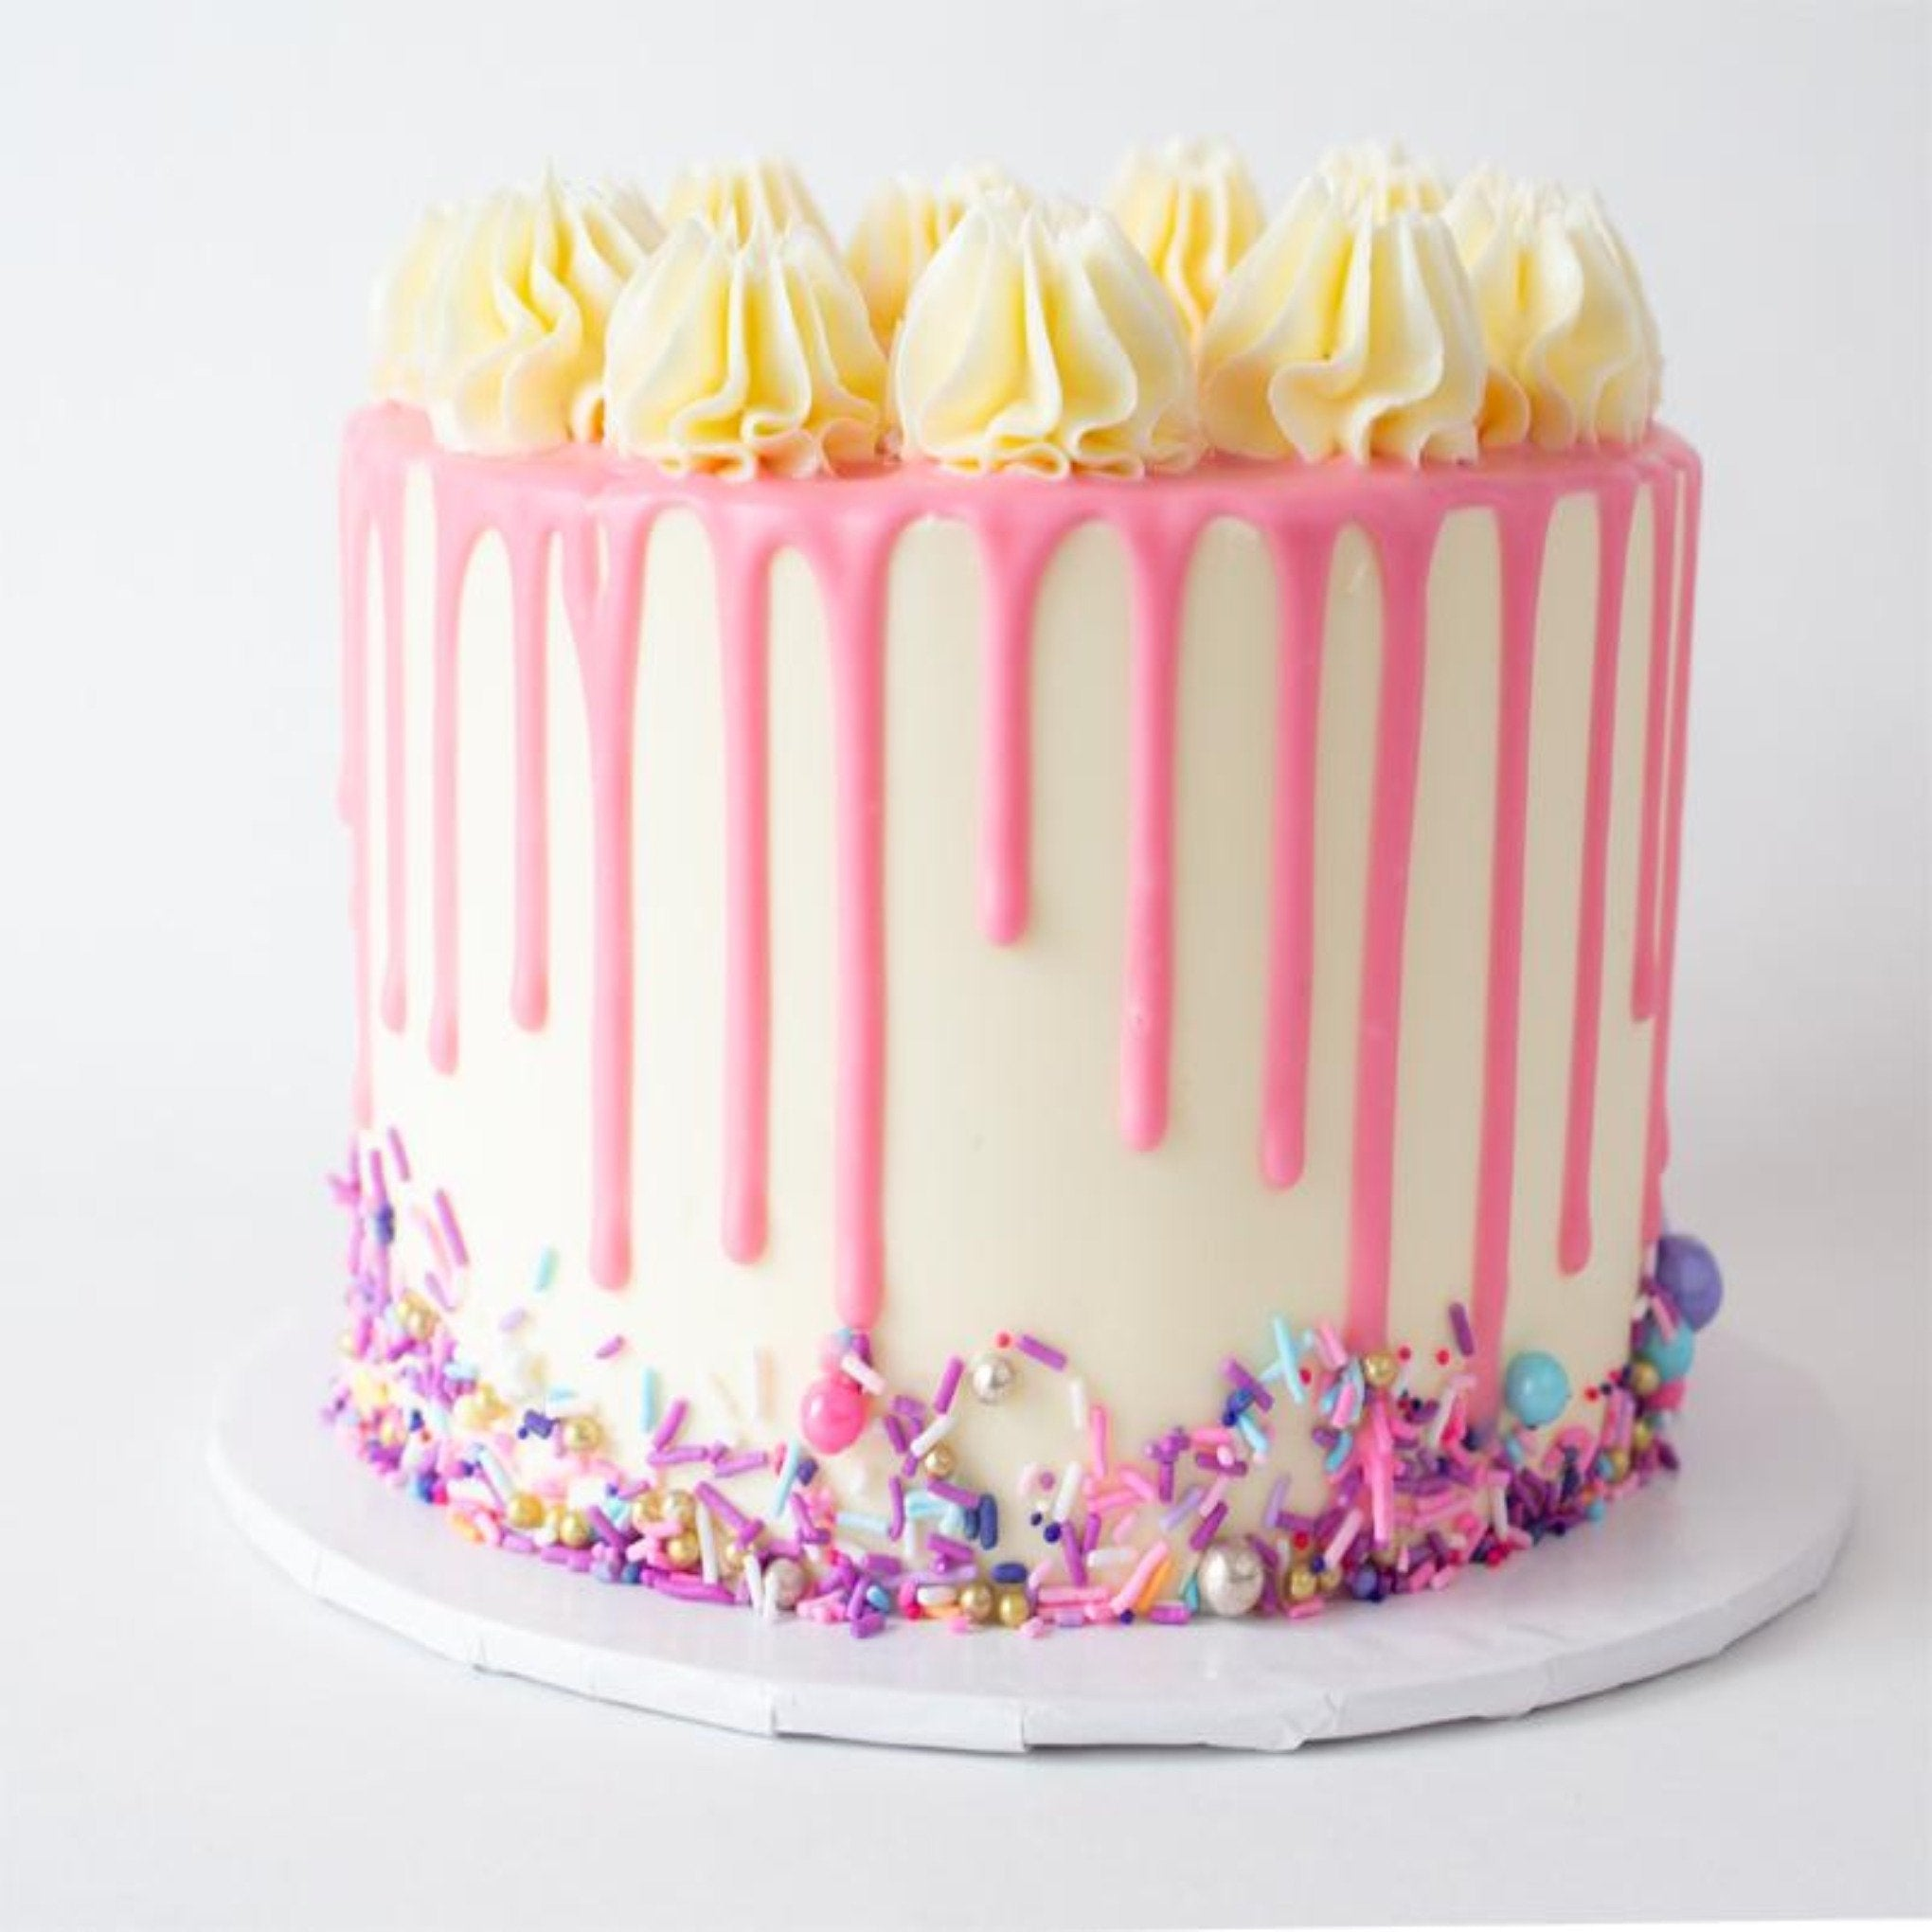 Pleasant Cake Royale Mississaugas Best Cakes And Desserts Personalised Birthday Cards Akebfashionlily Jamesorg